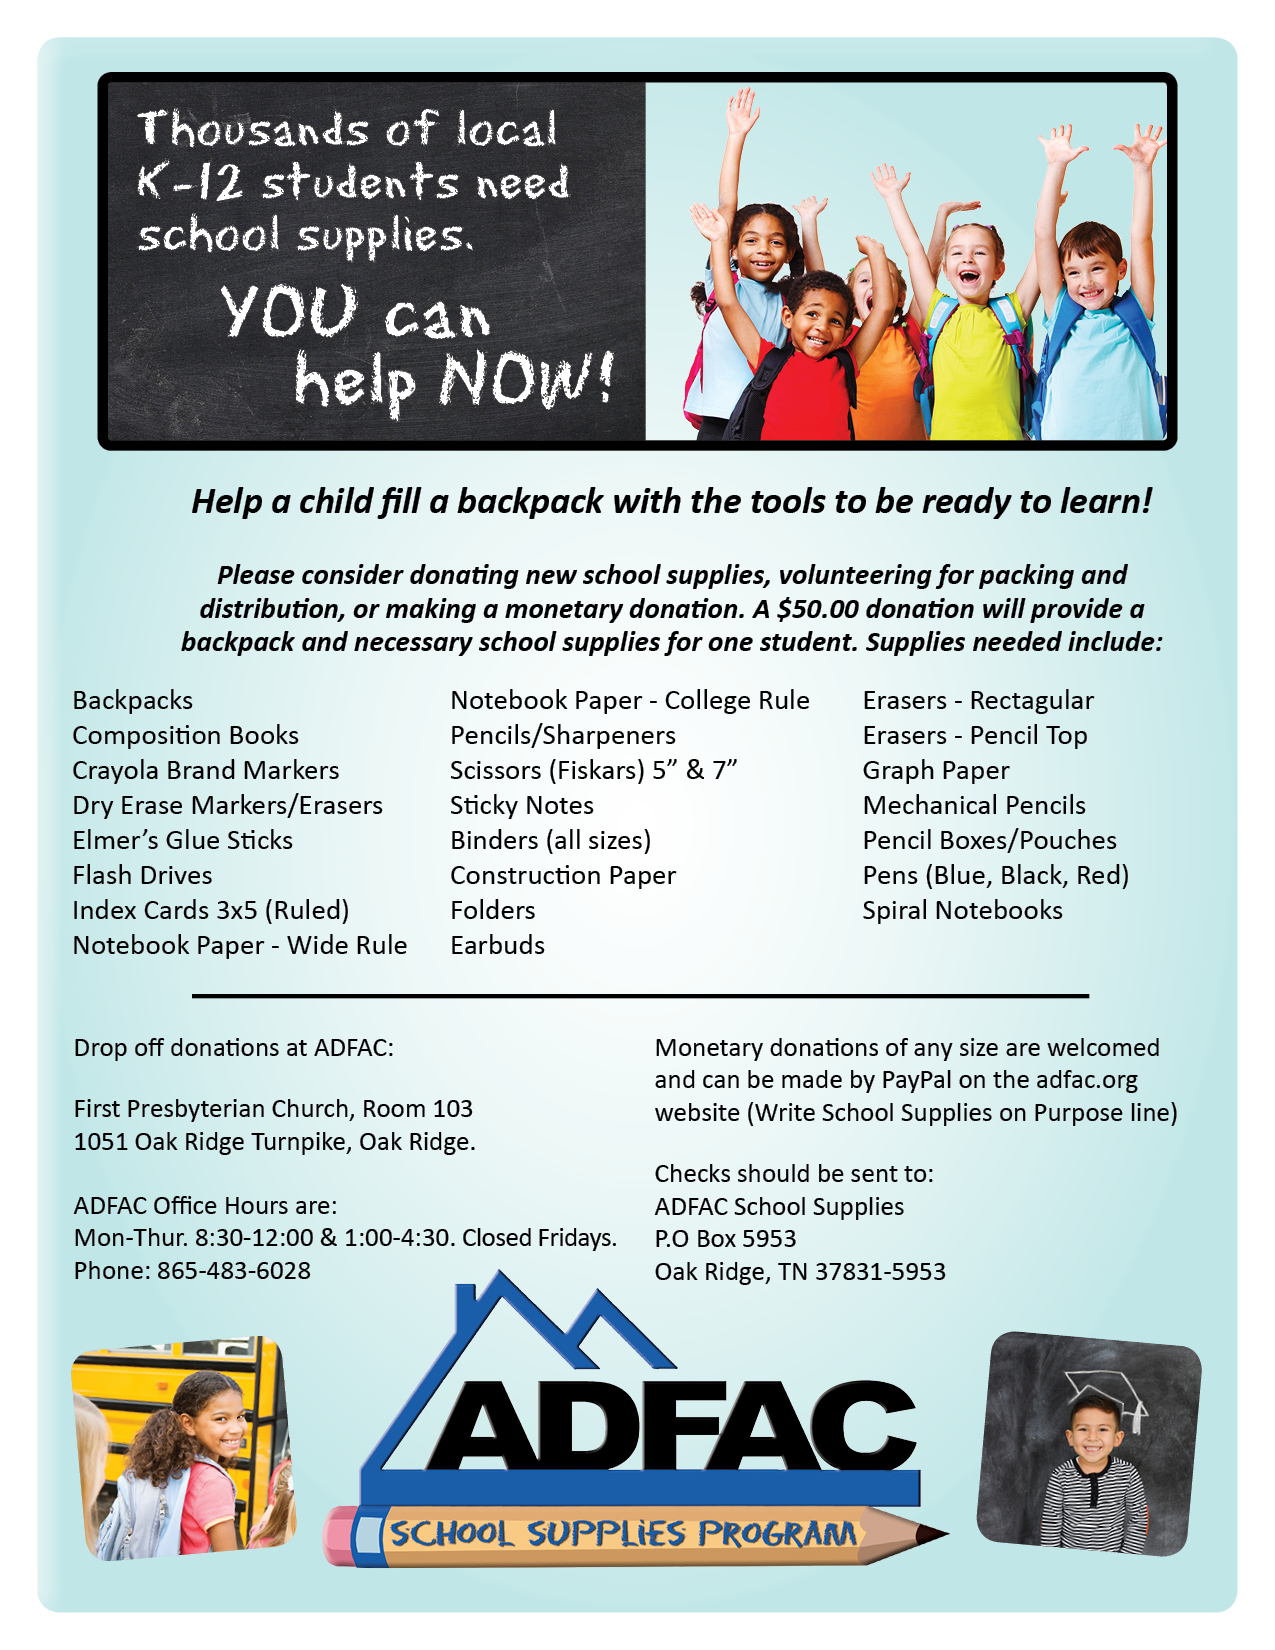 ADFAC's School Supplies Program